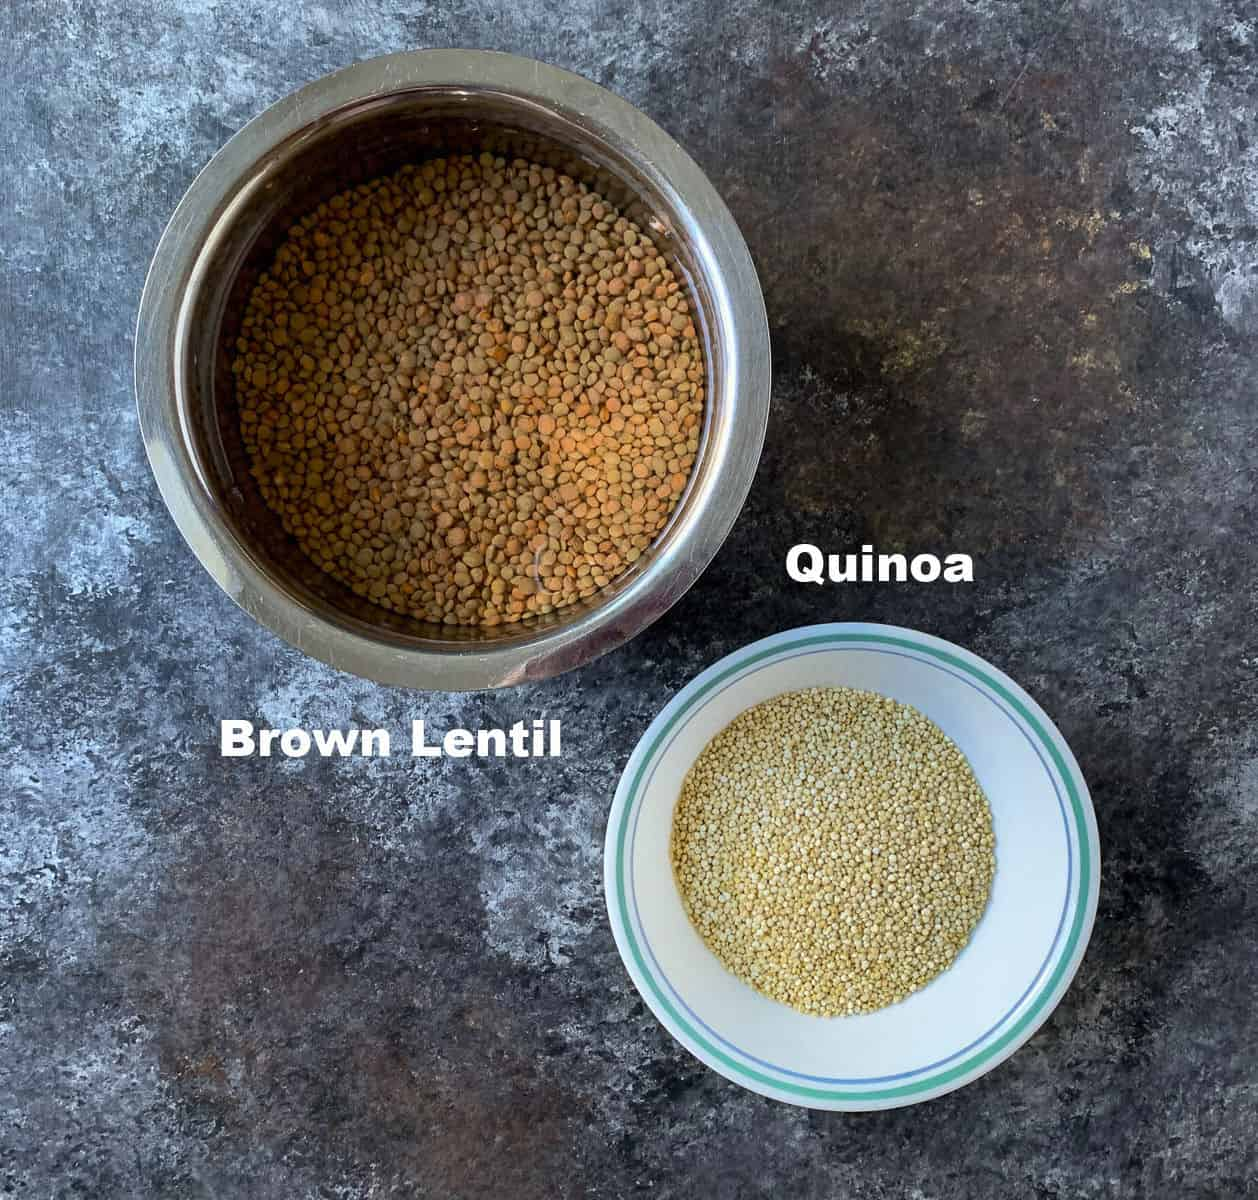 Brown Lentil and quinoa kept in bowls